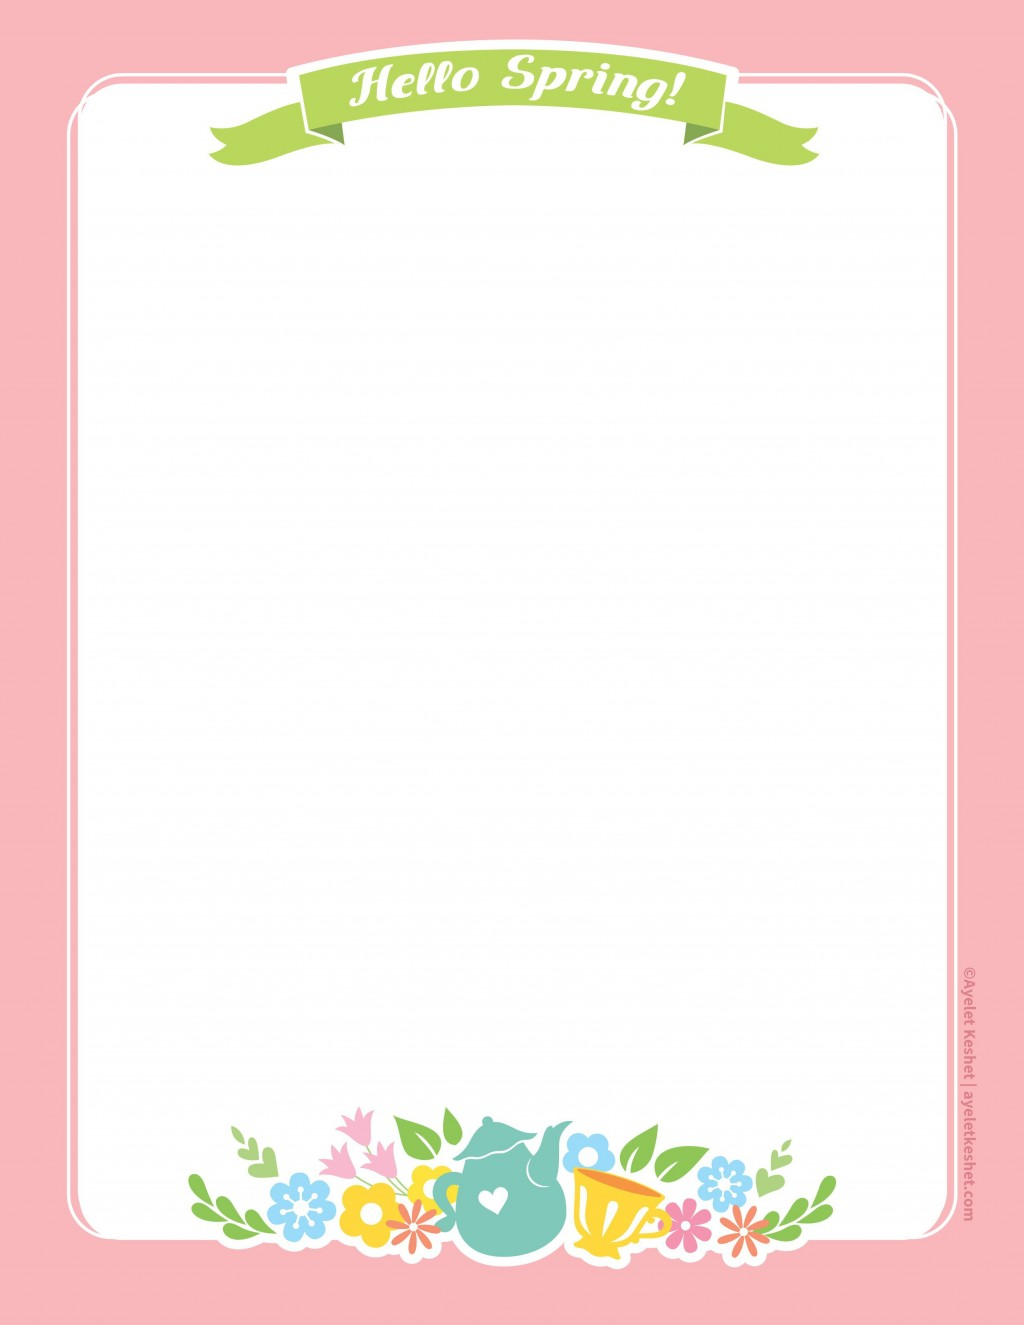 010 Imposing Free Printable Stationery Paper Template Example  TemplatesLarge